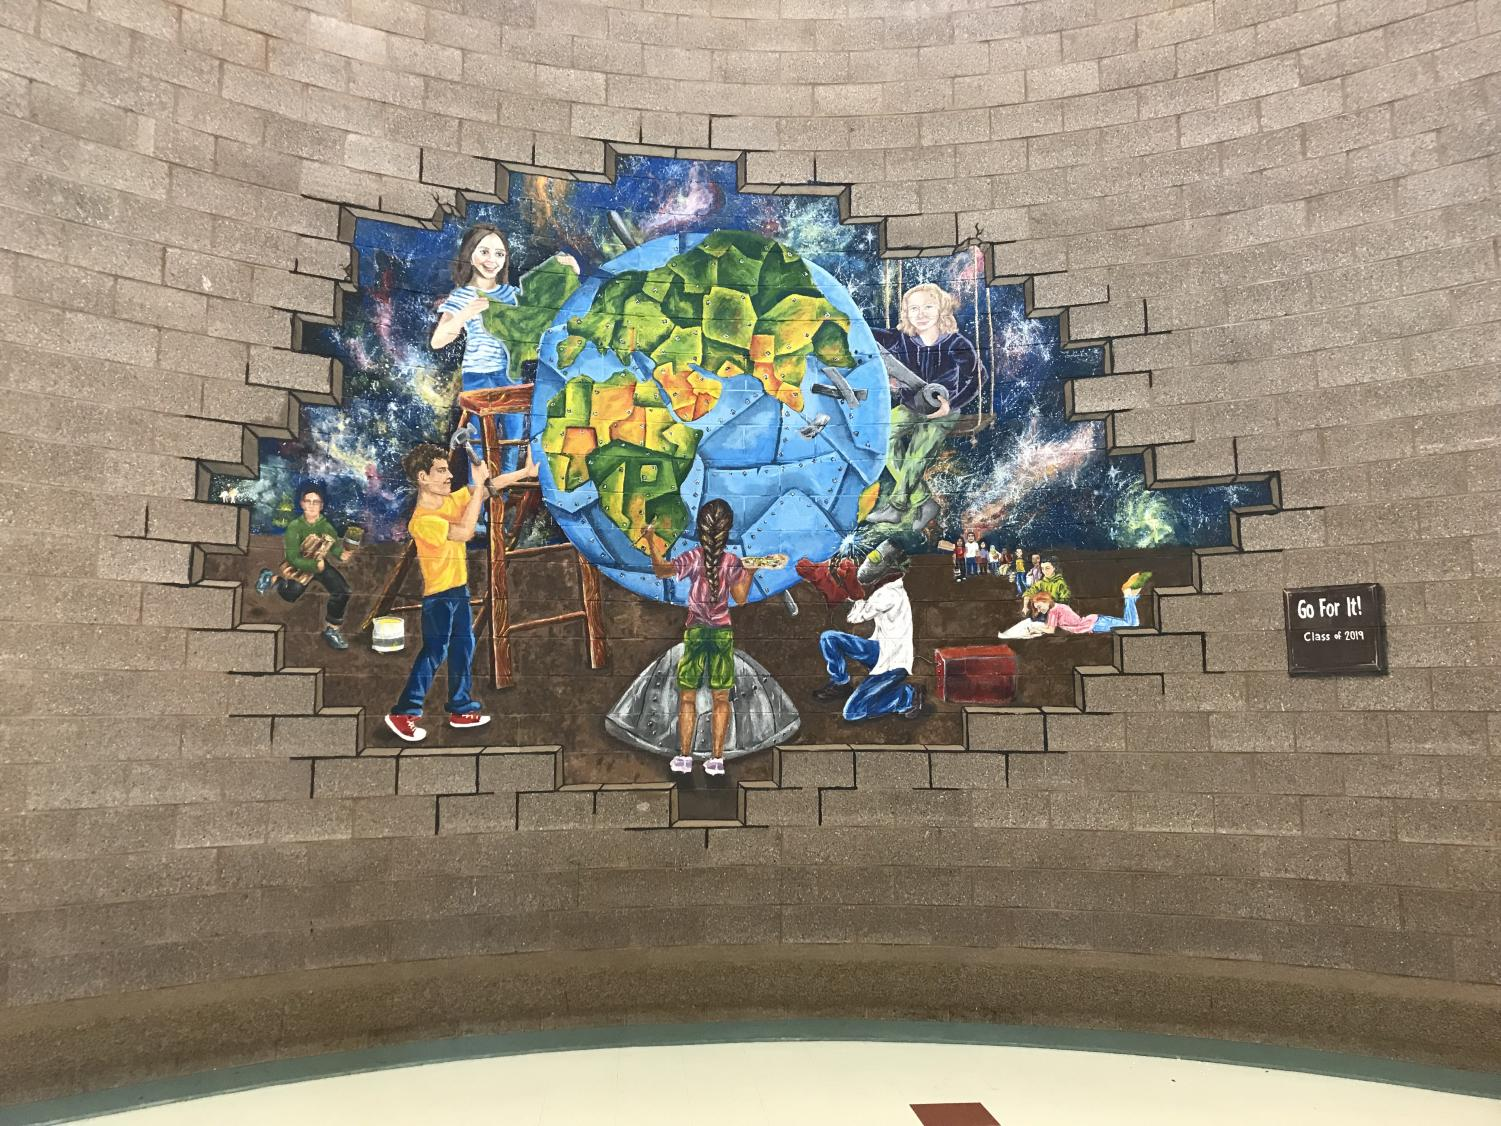 FINALLY FINISHED: Students can see the final product of the mural in the rotunda at SVHS.